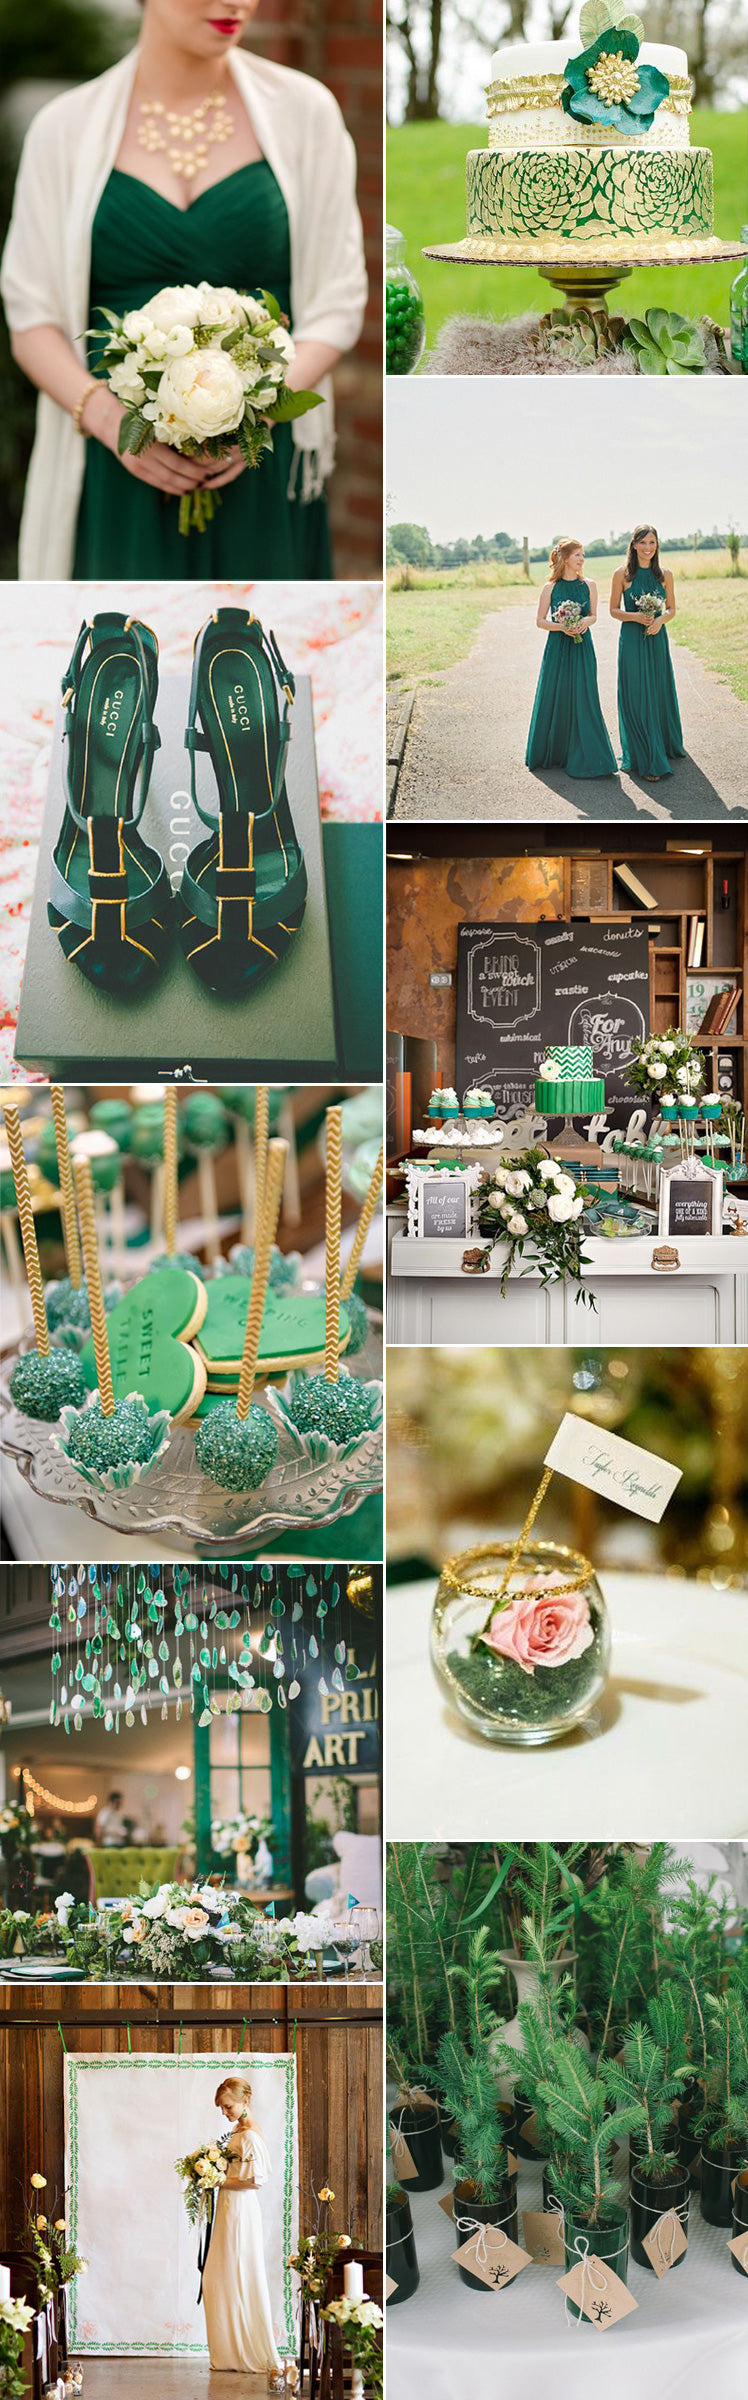 Sensational emerald green wedding ideas